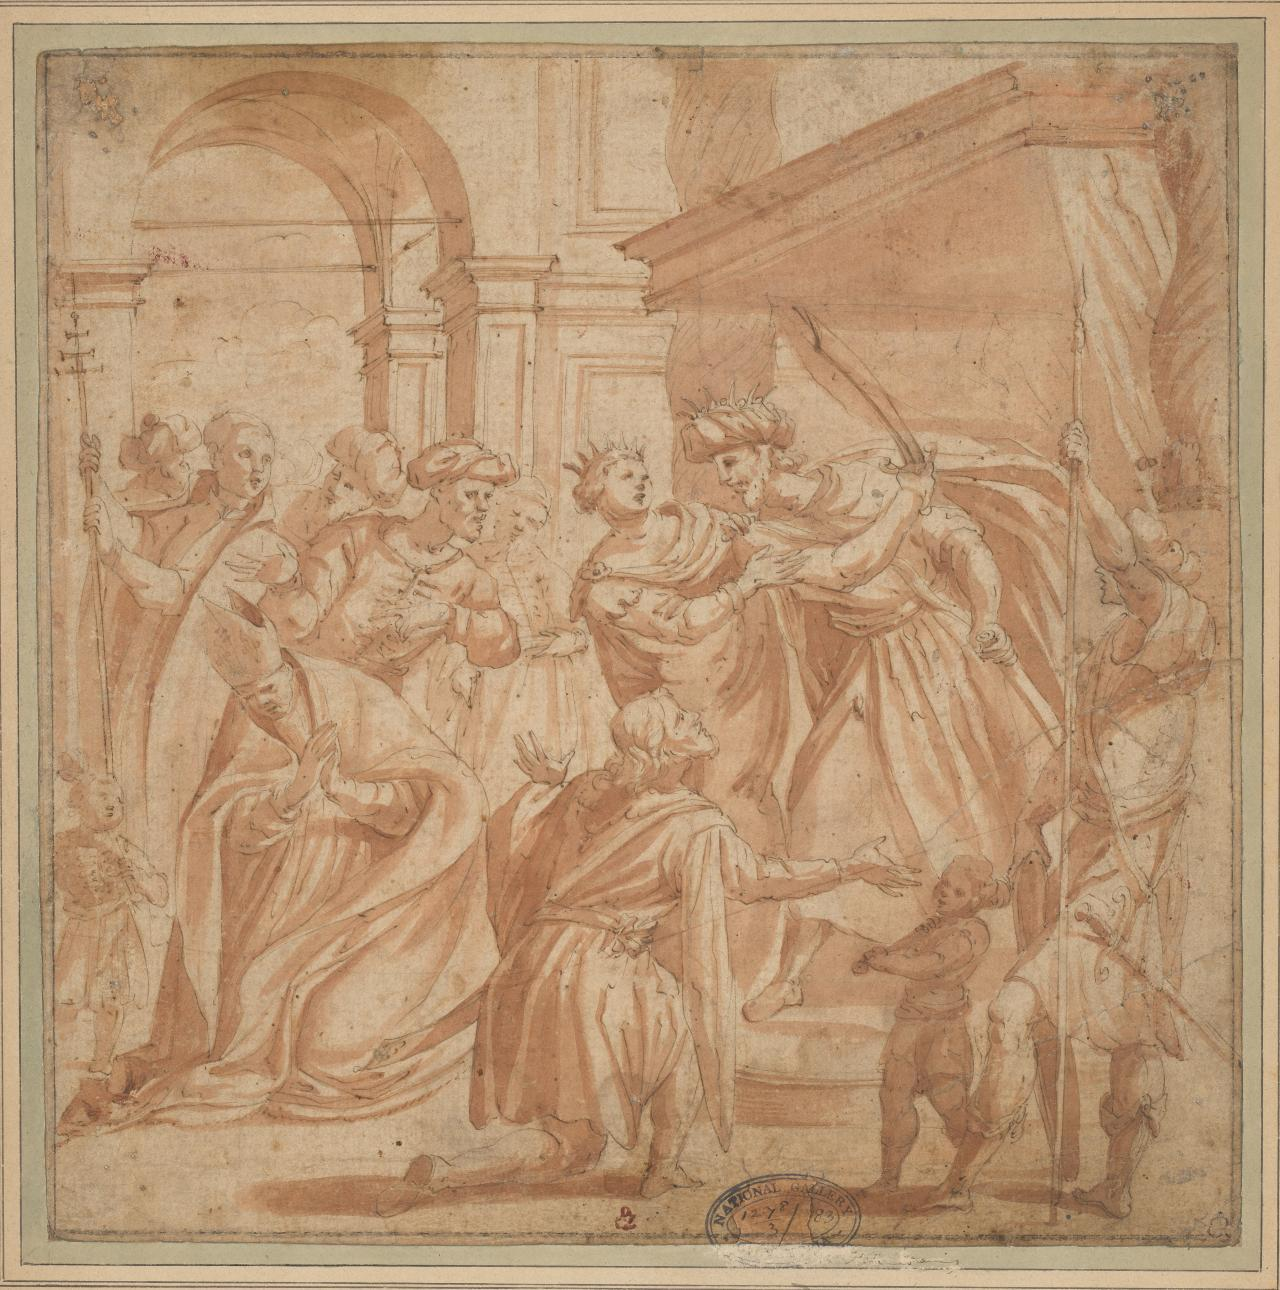 A King surrounded by his court, rises up from his throne threatening with a sword a bishop kneeling before him